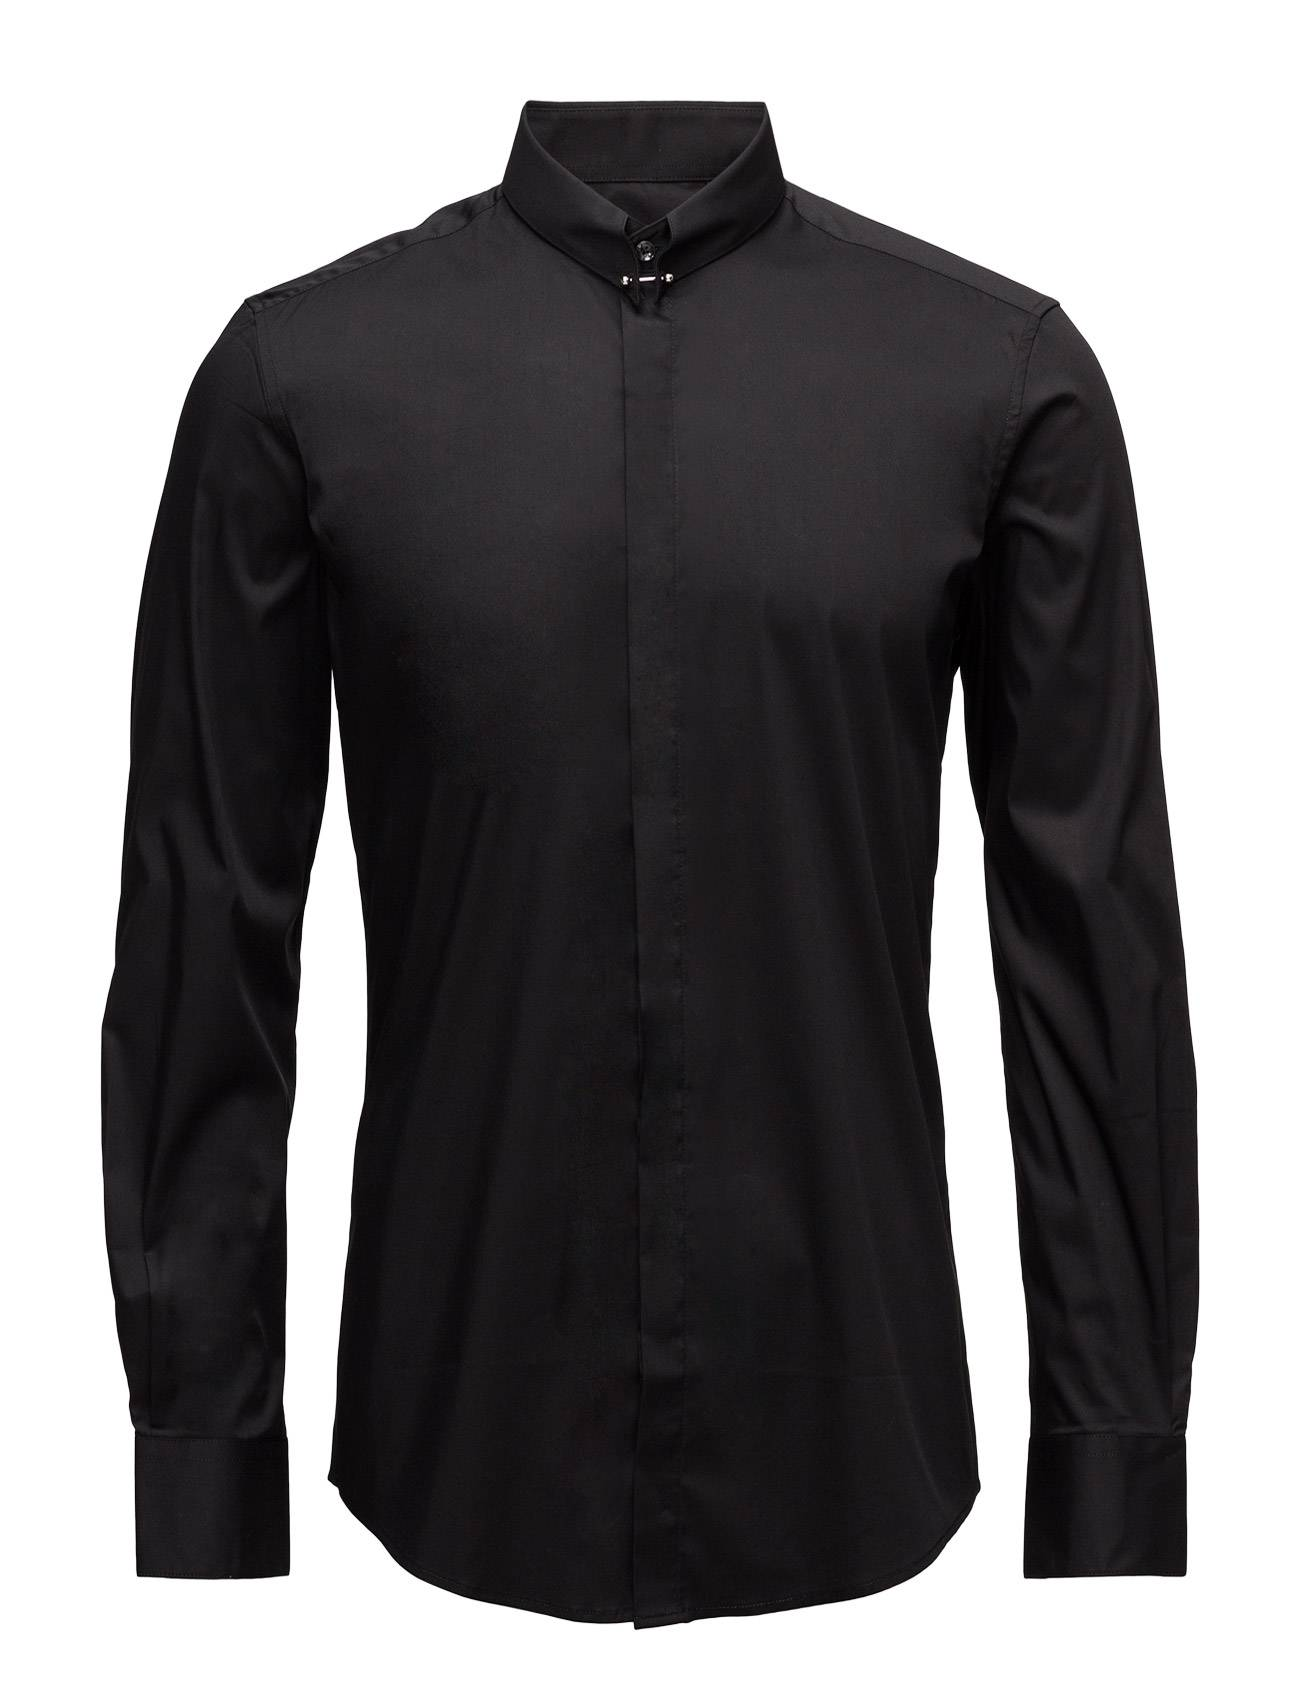 Antony Morato Shirt With Piercing On Front Center Collar